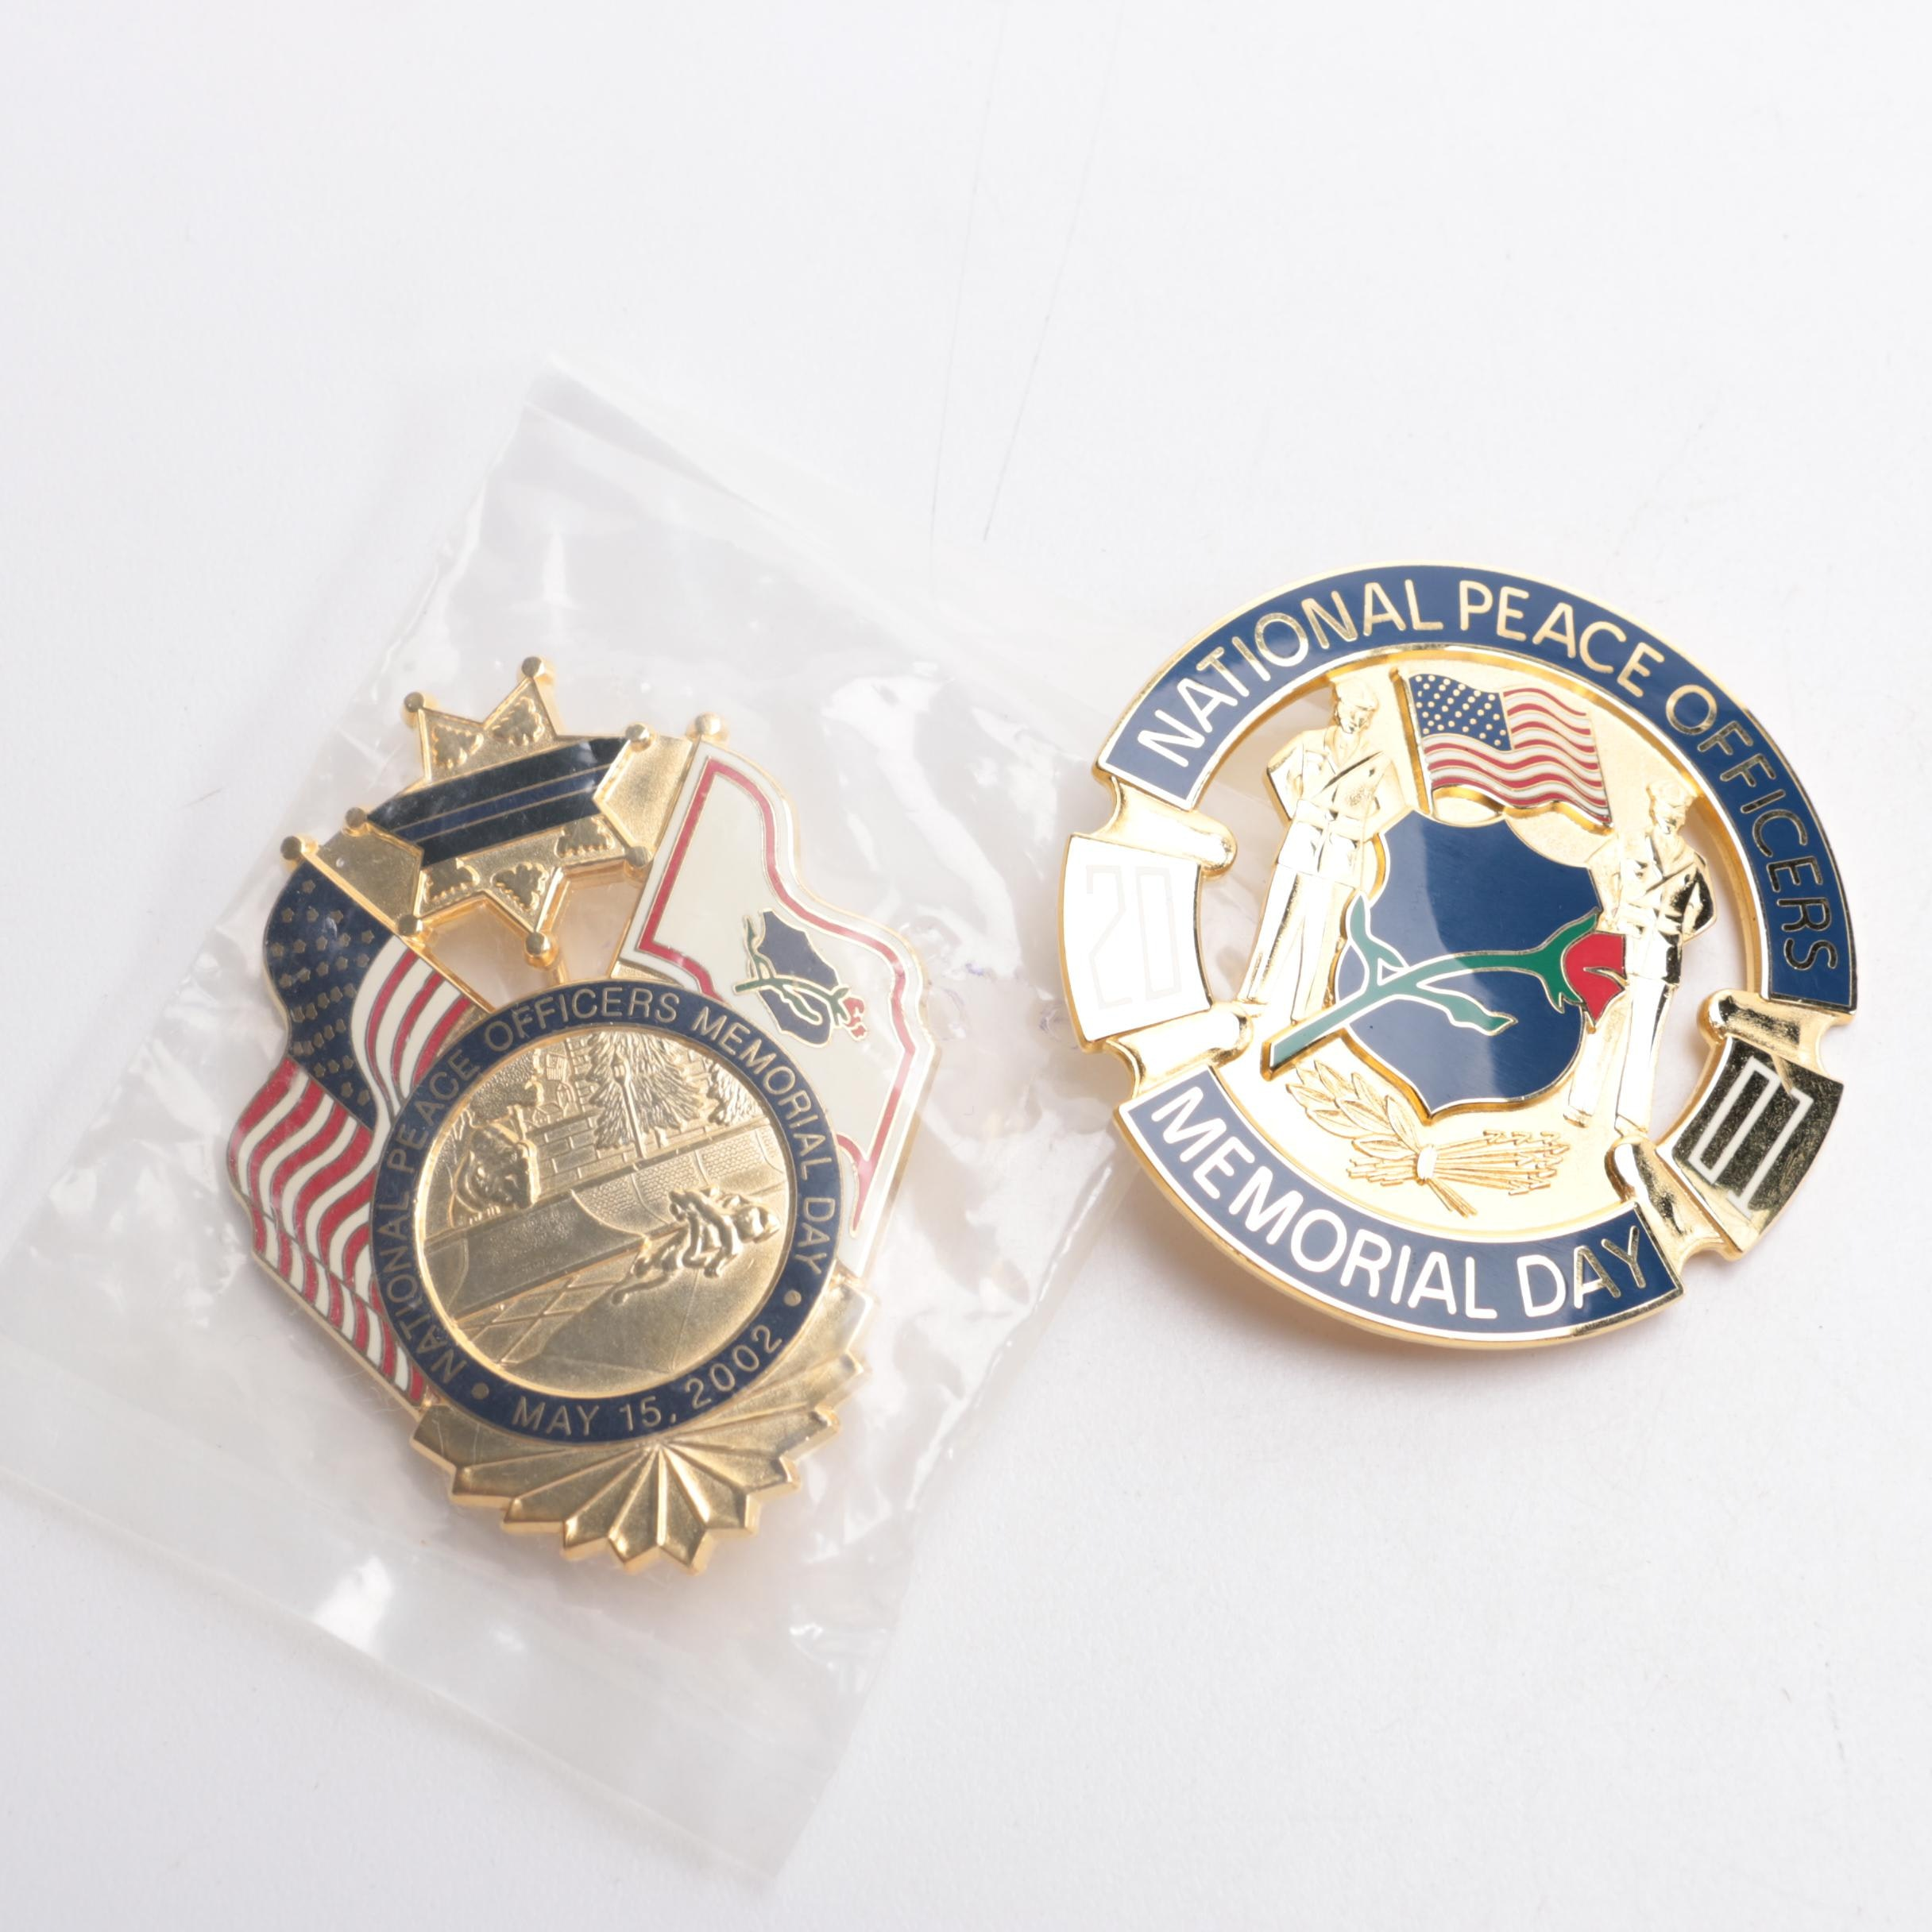 National Peace Officer  Memorial Day Pins